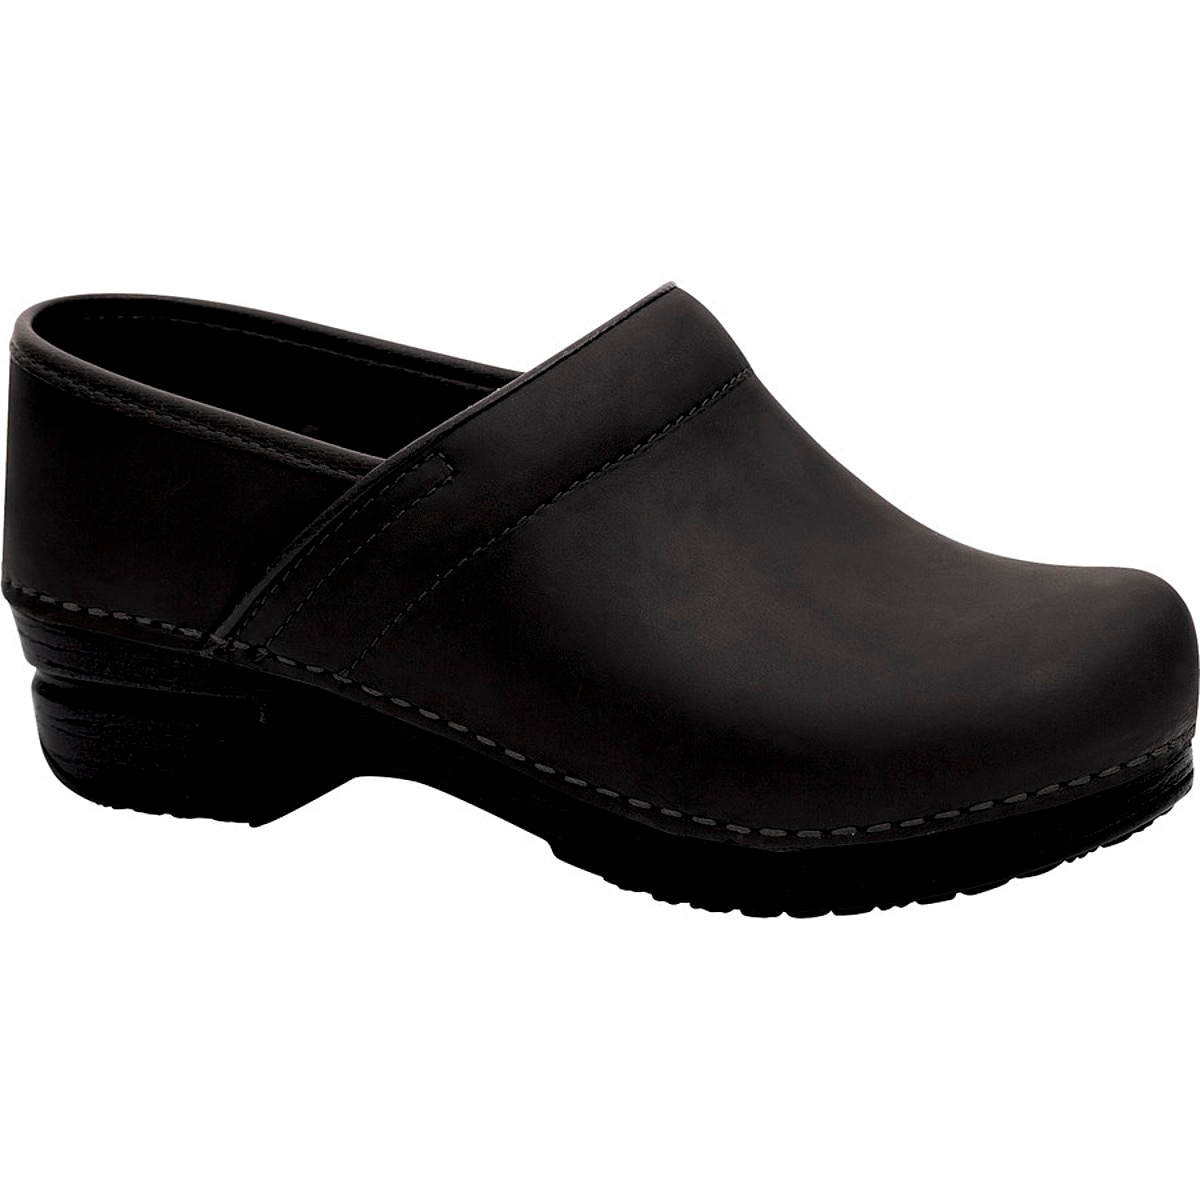 Dansko Women's 'Professional' Oiled Leather Clog